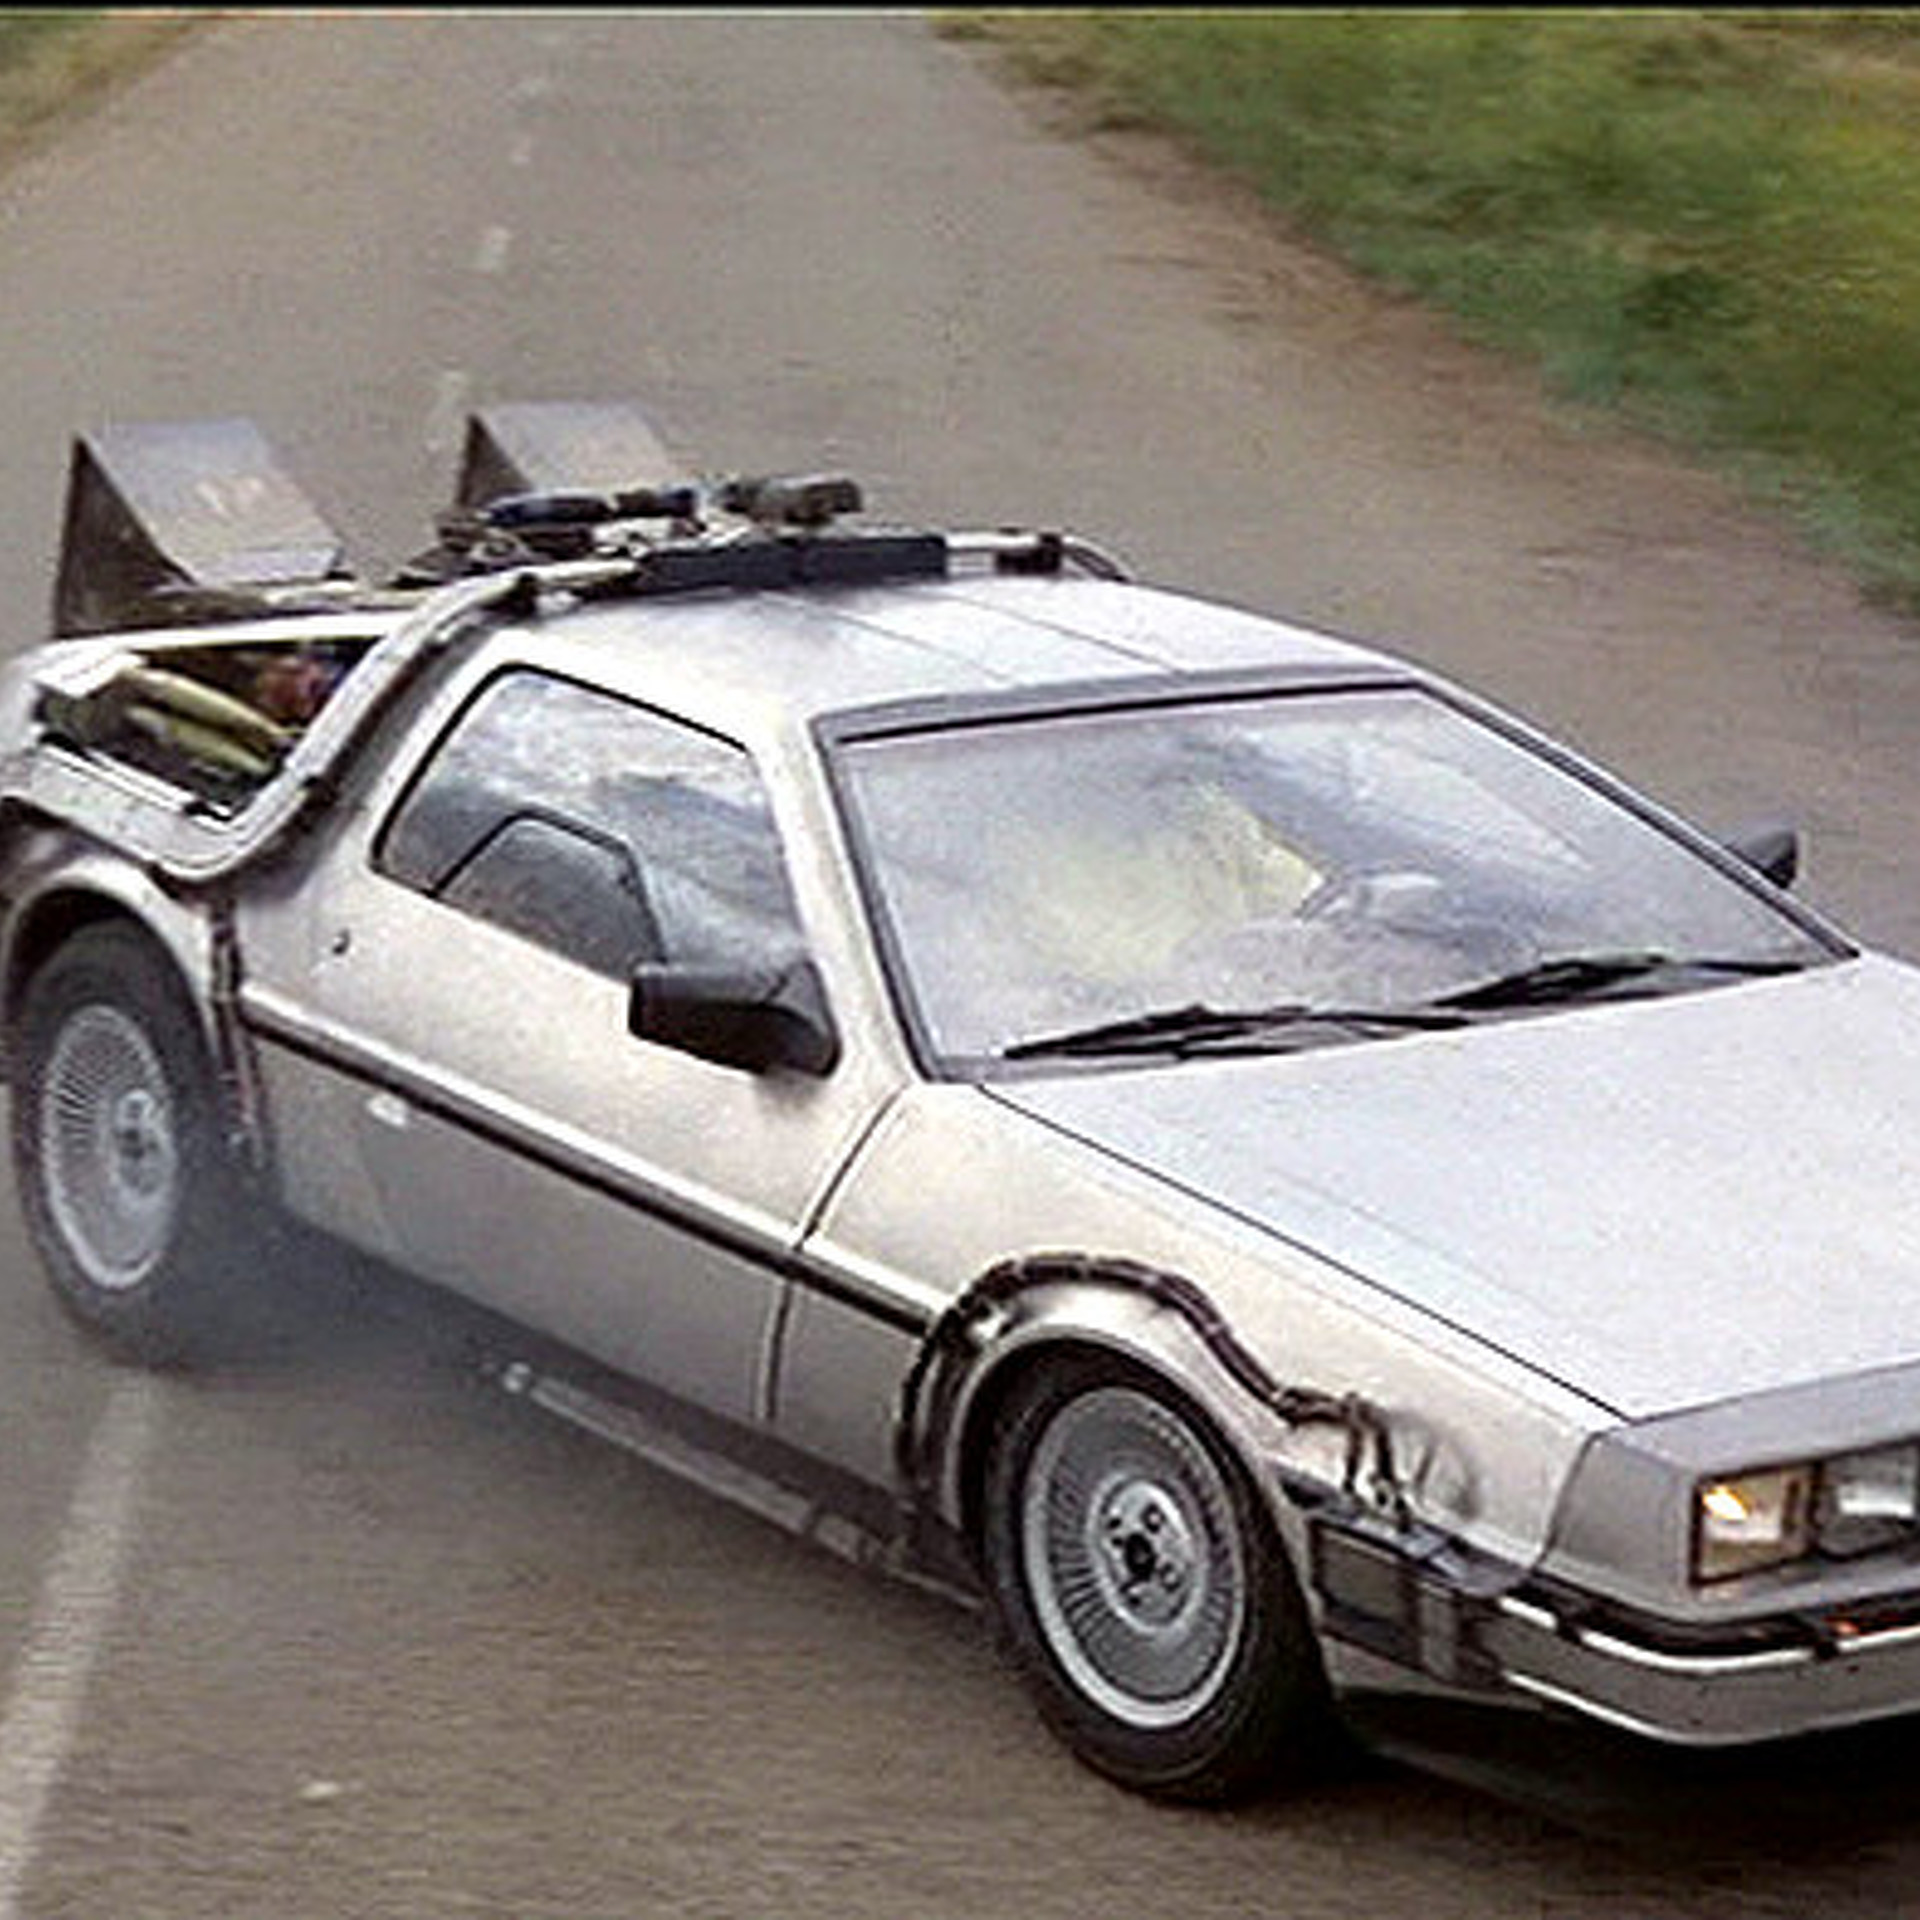 DeLorean's Back: Now, How Do You Style Your DMC-12?